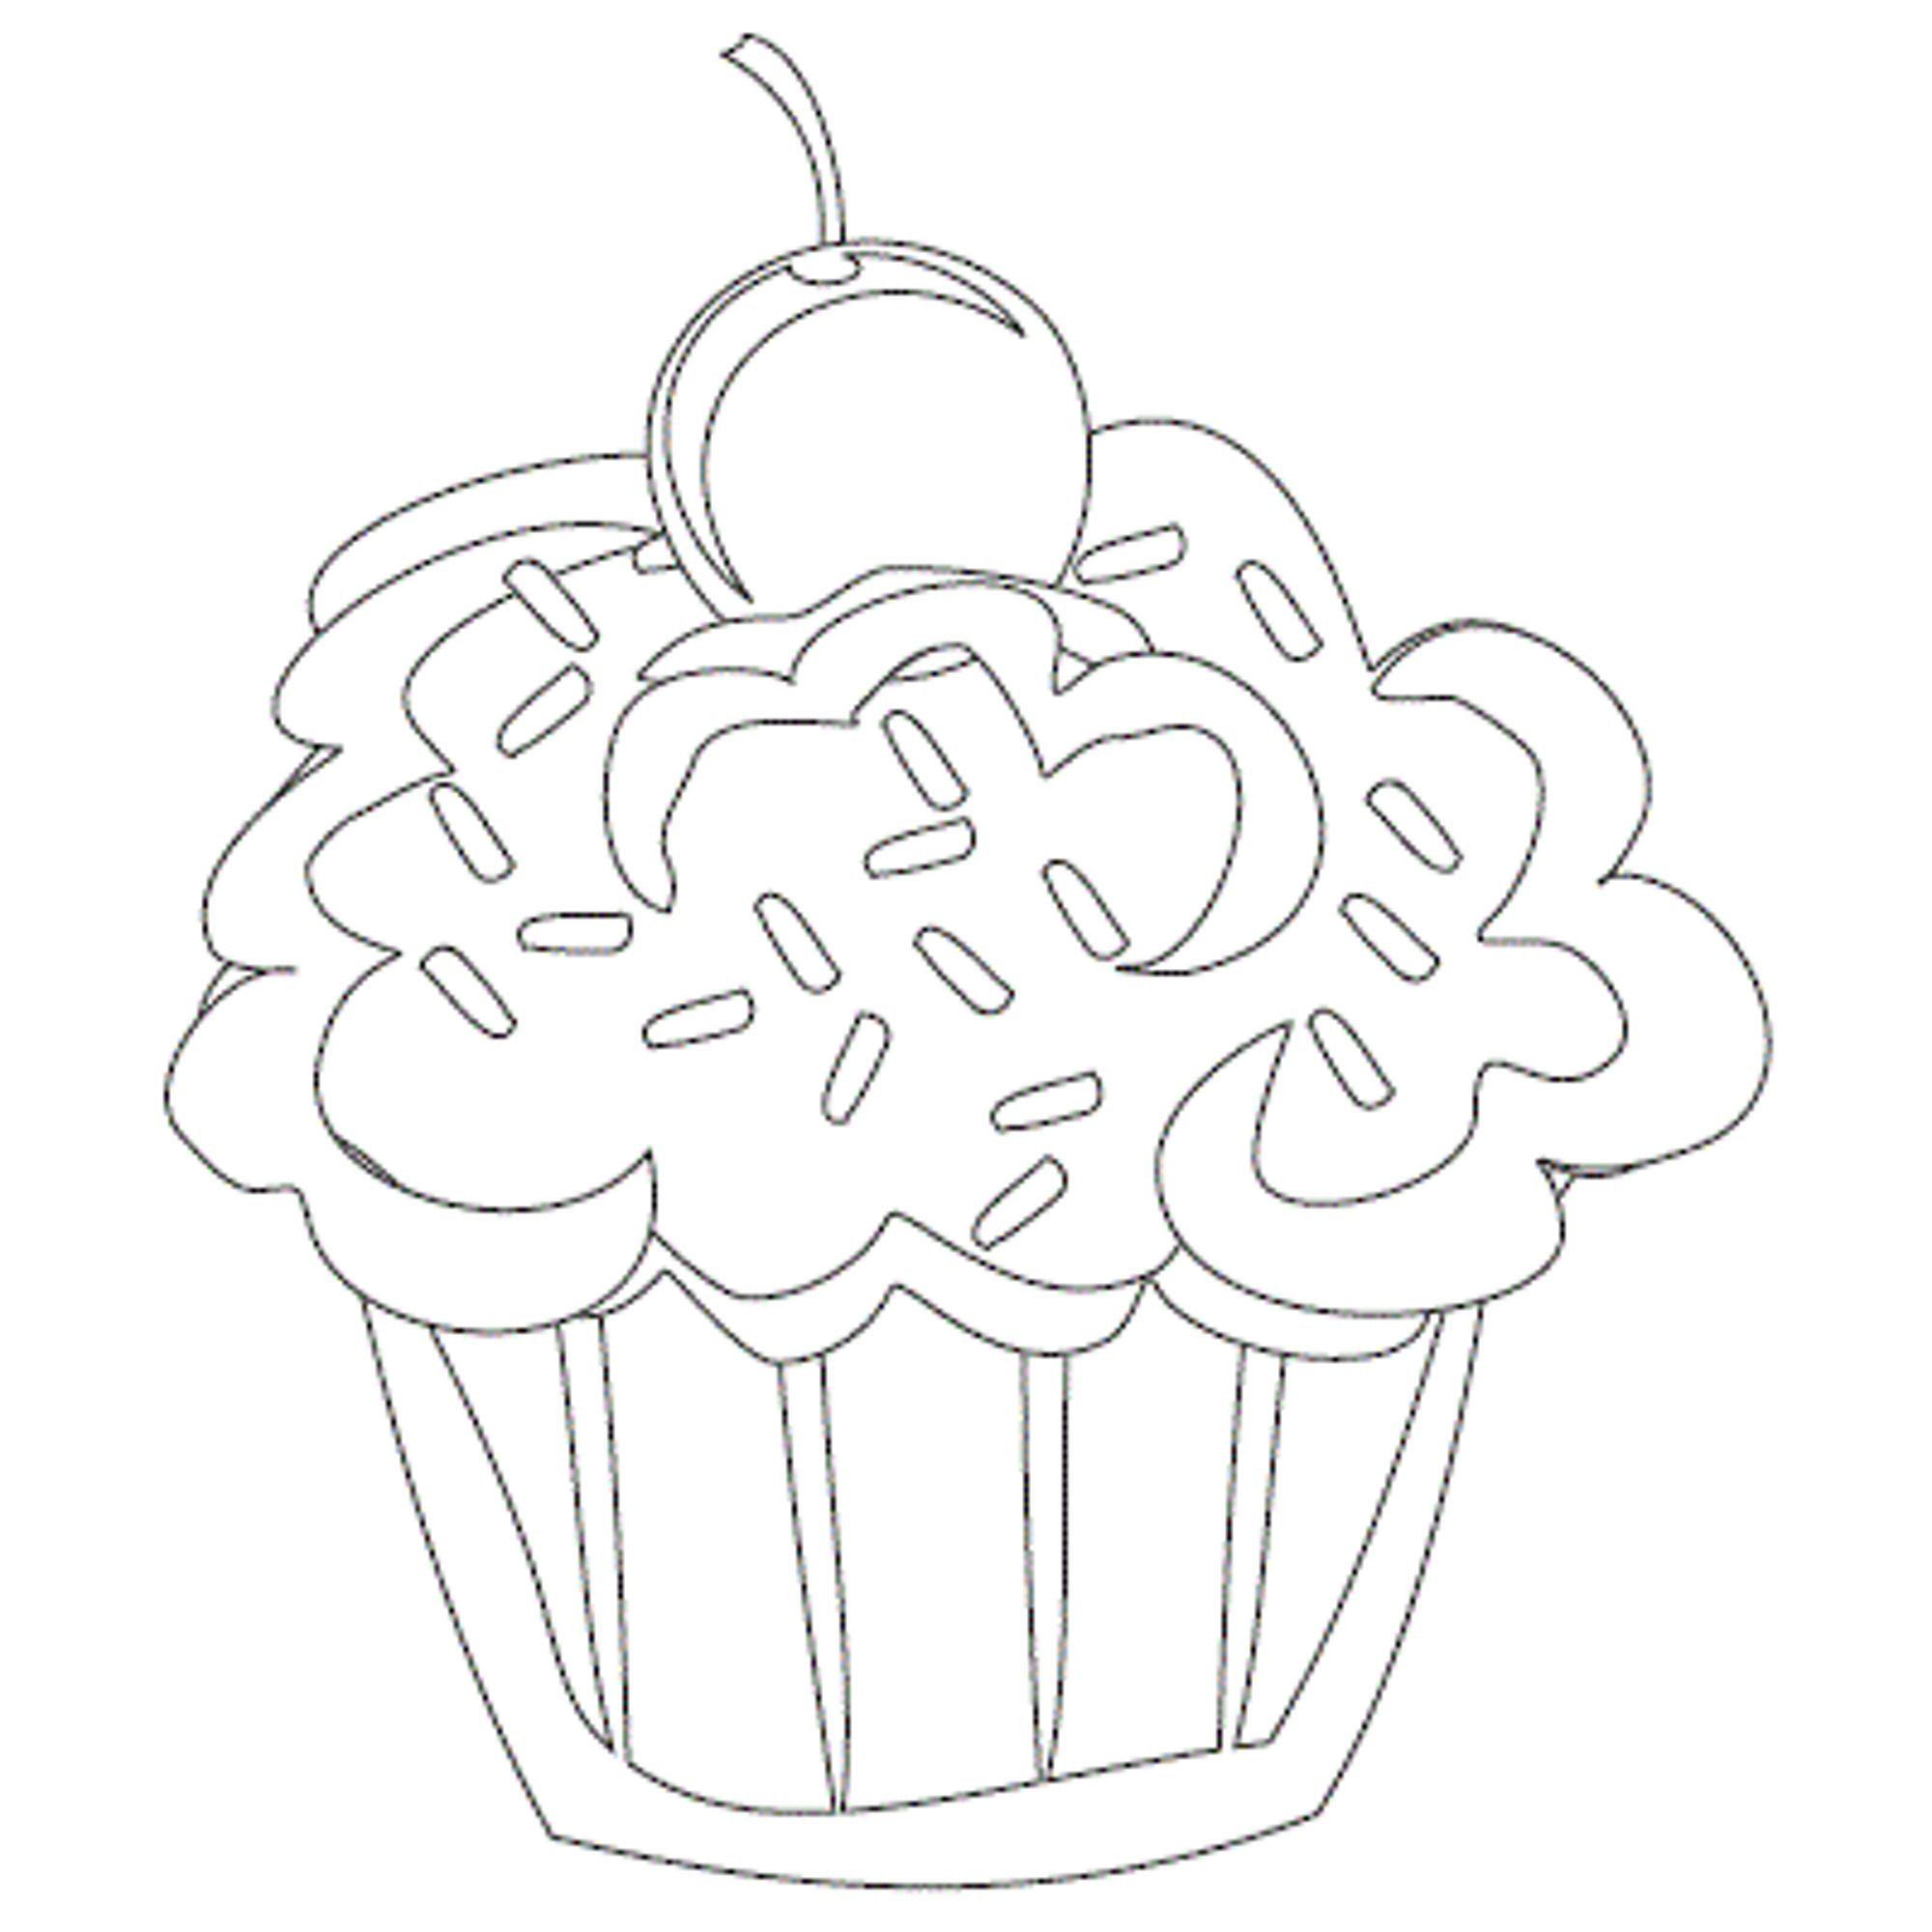 Cute Cupcakes Coloring Page Cupcake Coloring Pages